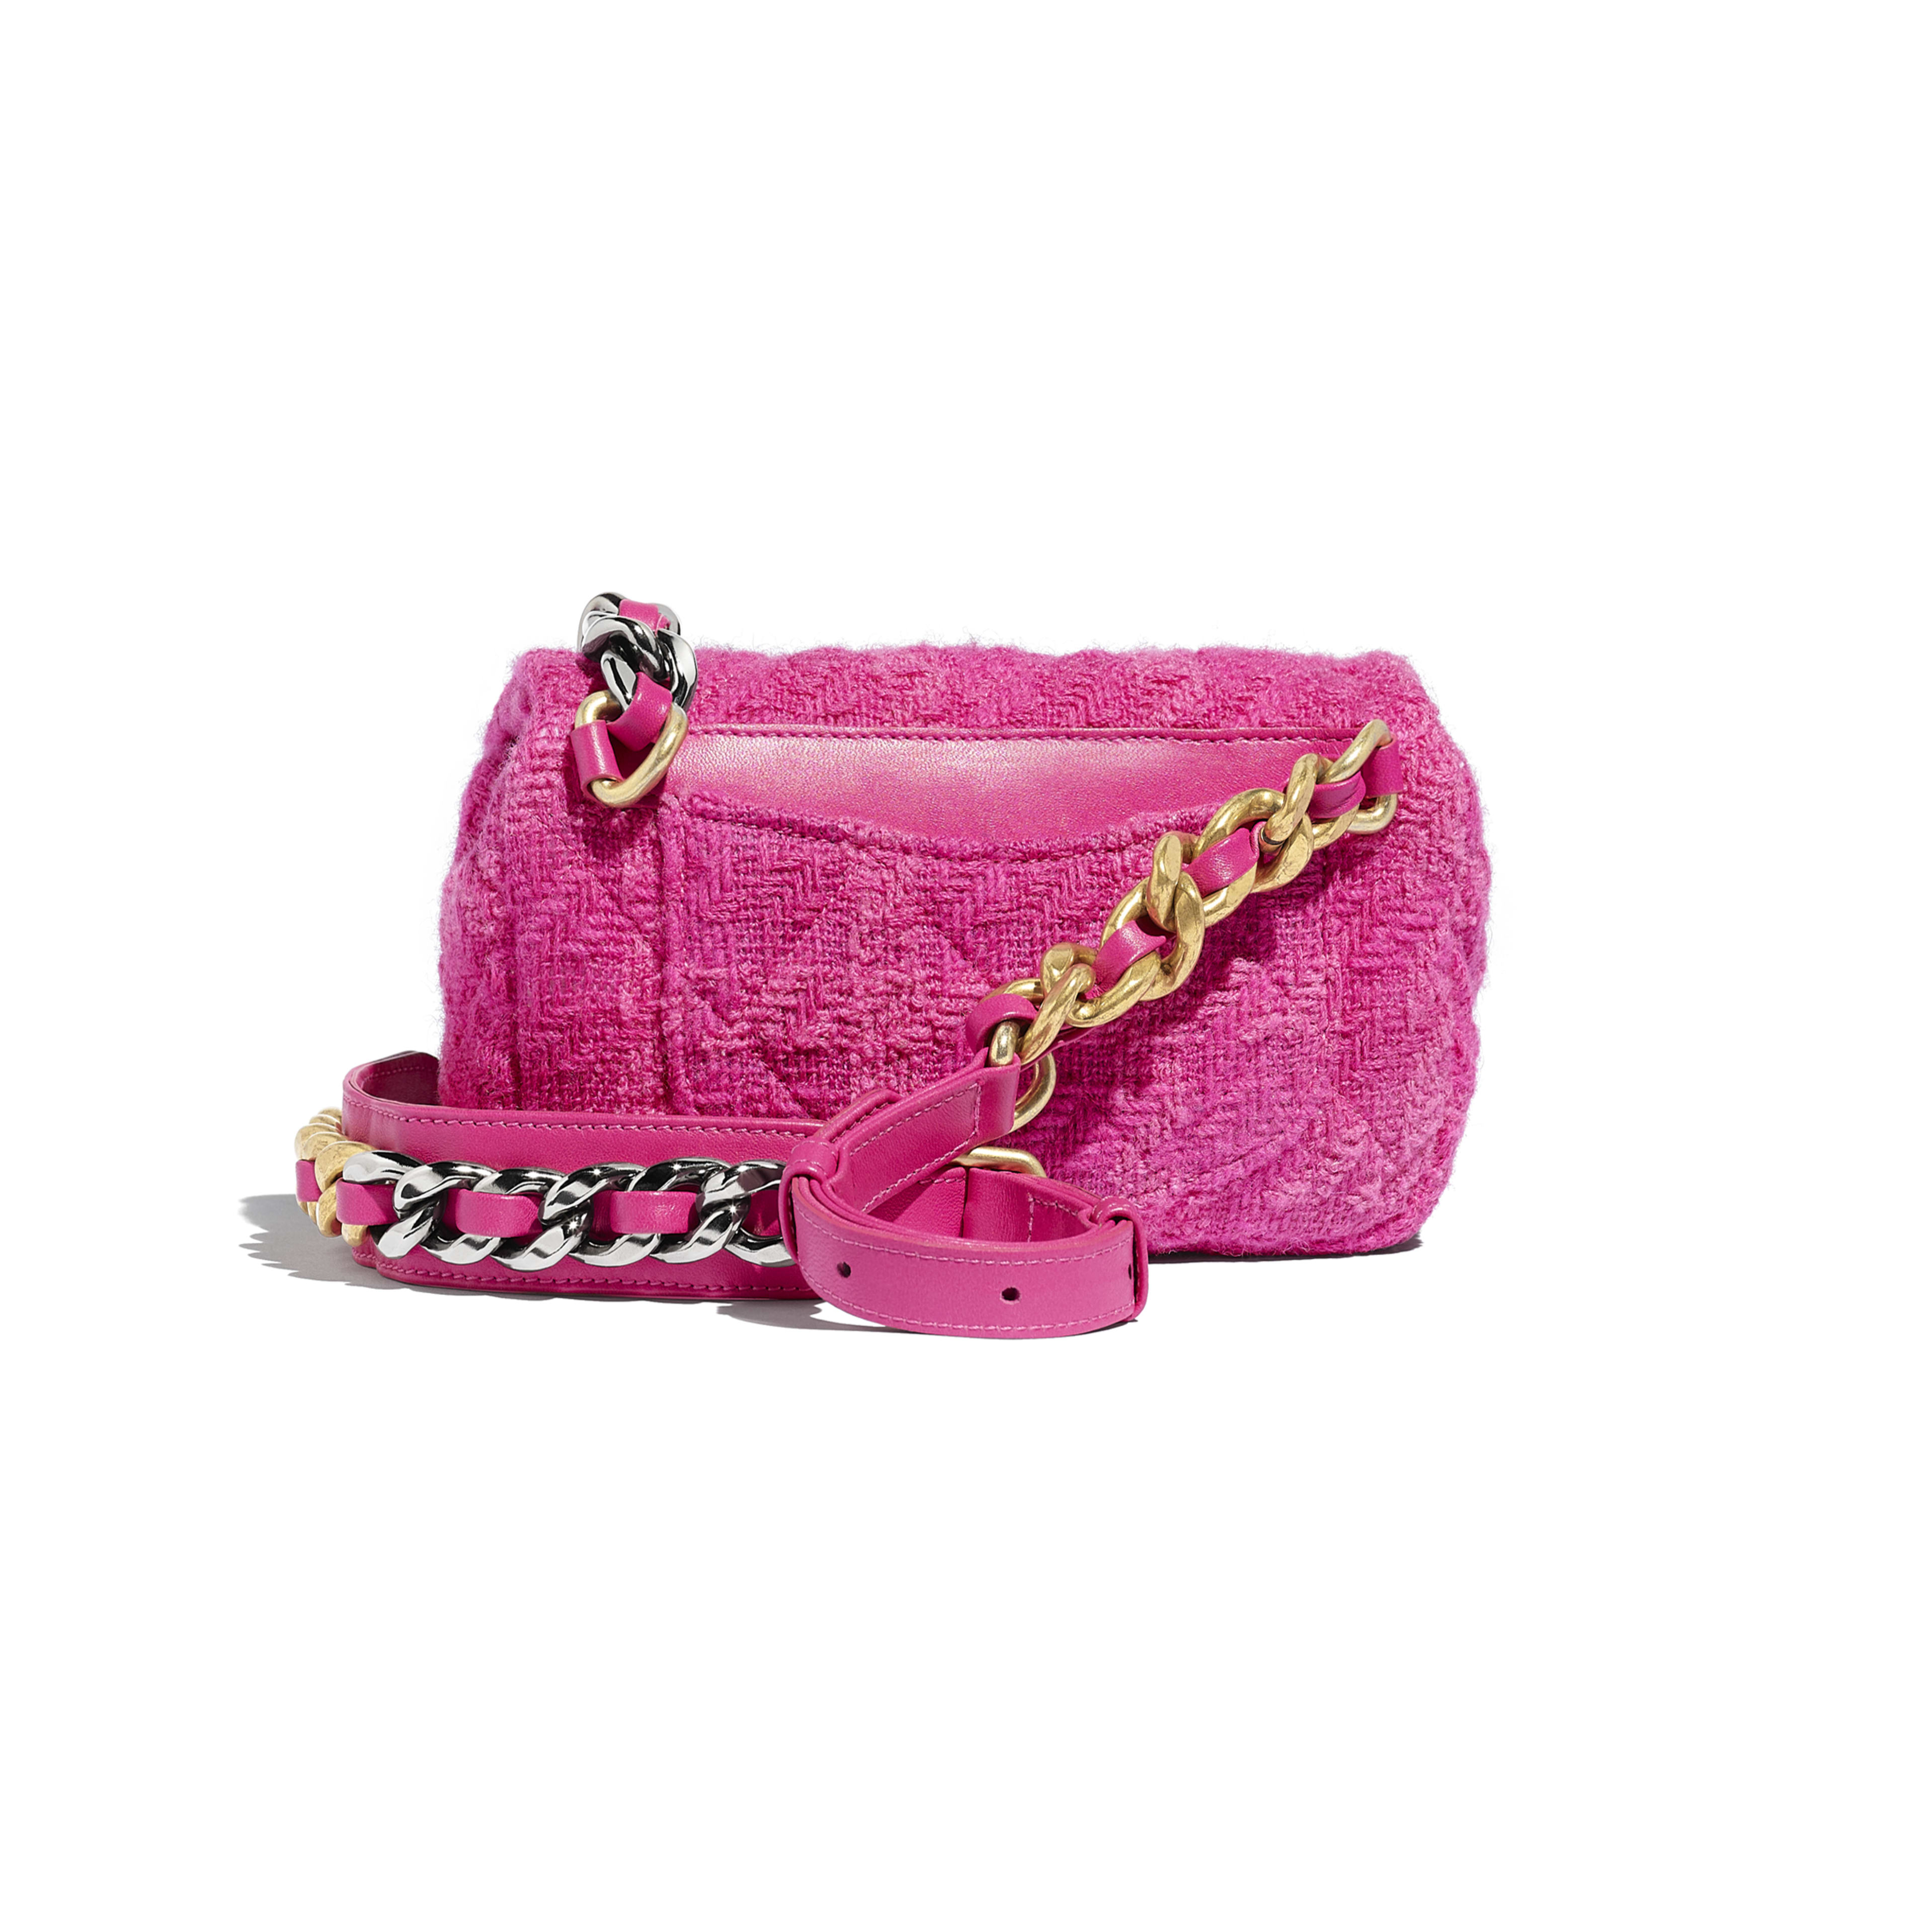 CHANEL 19 Waist Bag - Pink - Wool Tweed, Gold-Tone, Silver-Tone & Ruthenium-Finish Metal - Alternative view - see full sized version